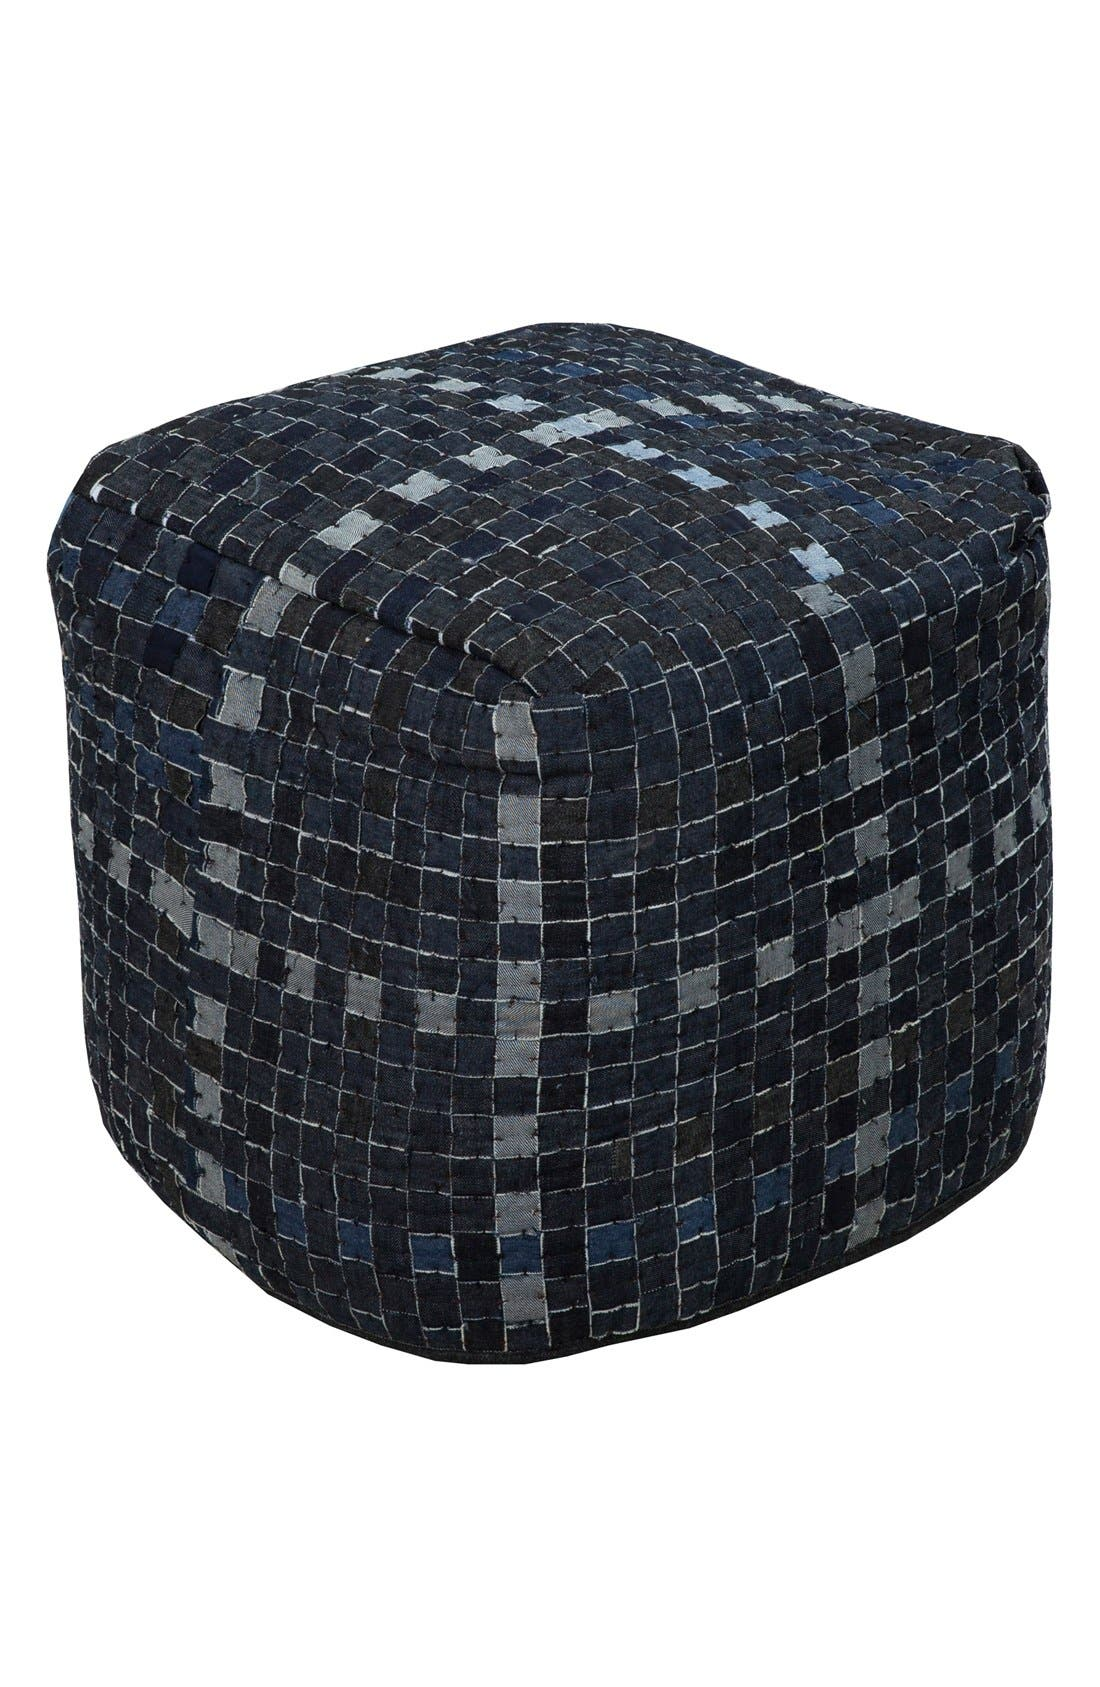 Alternate Image 1 Selected - Surya Home Denim Pouf